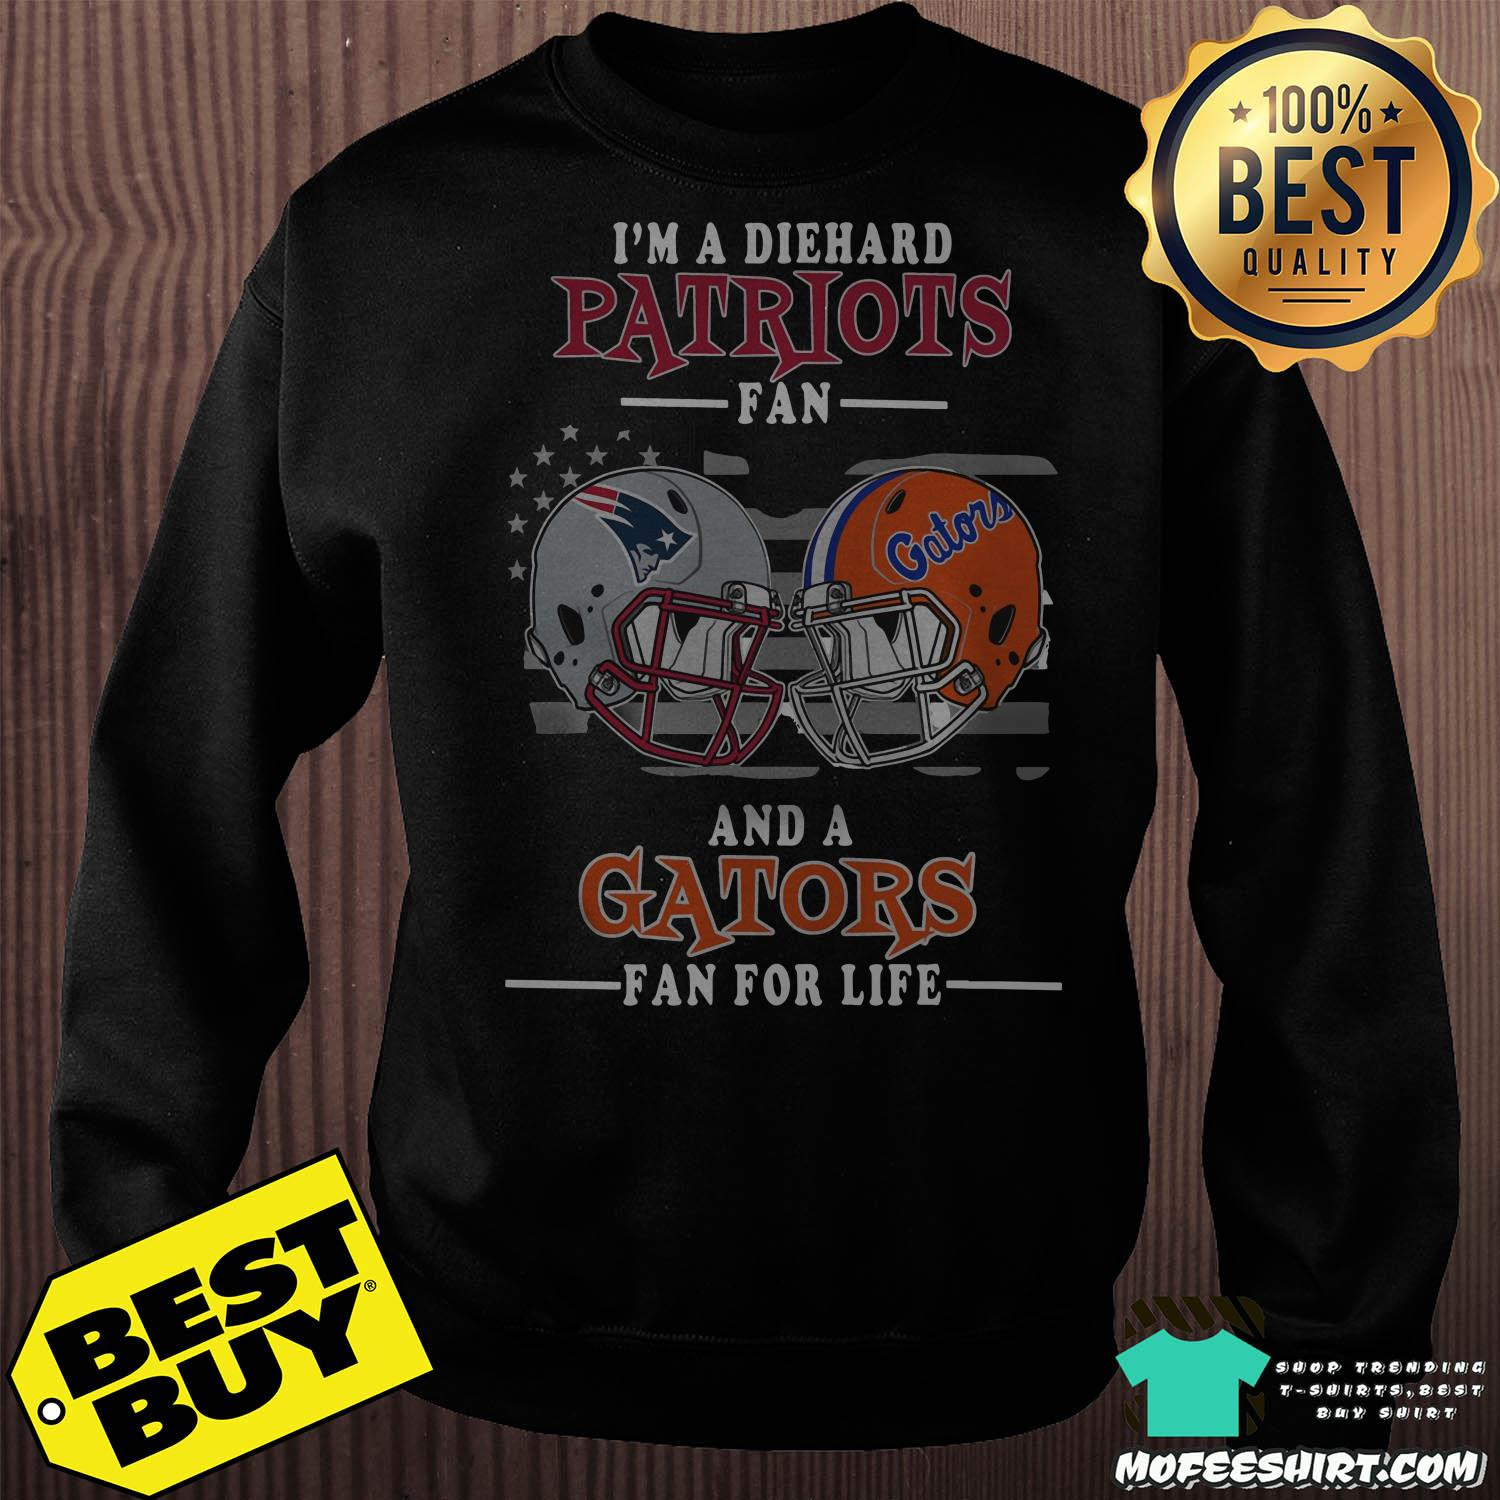 im a diehard patriots fan and a gators for life sweatshirt - I'm A Diehard Patriots Fan And A Gators For Life Shirt